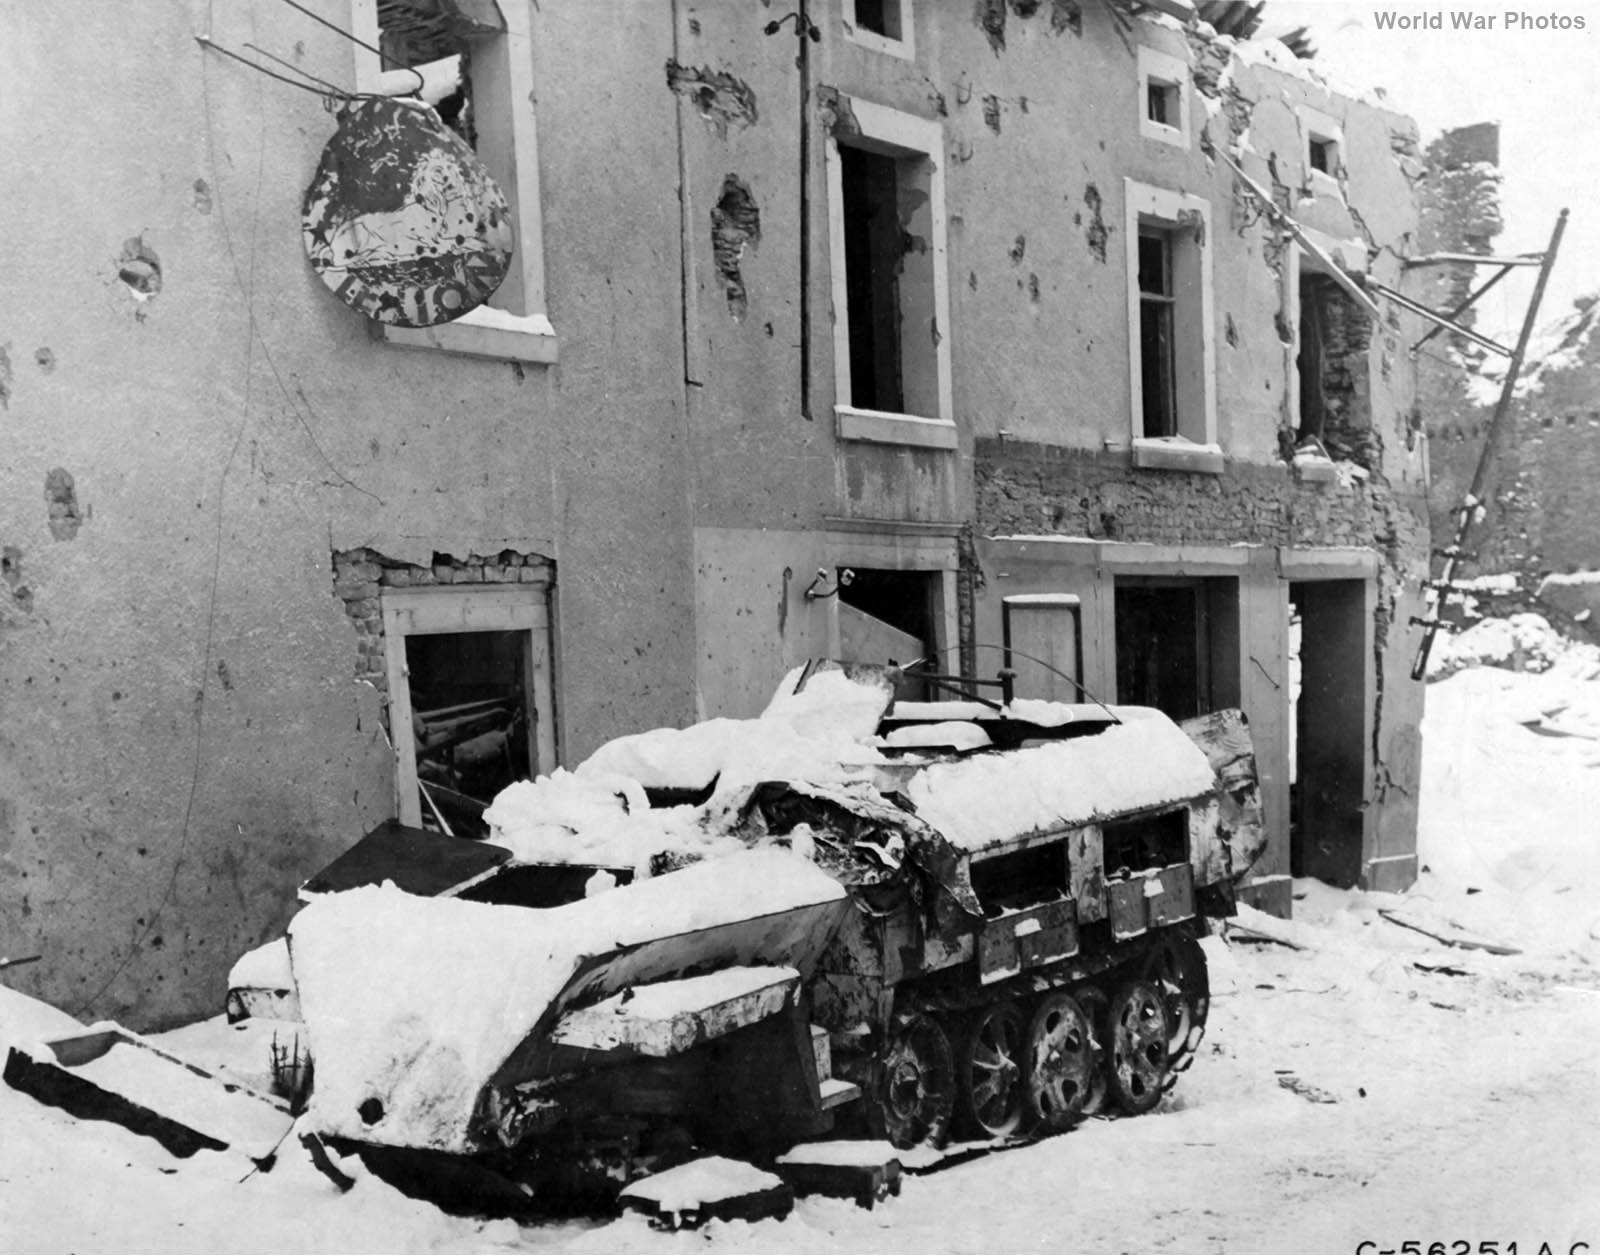 SdKfz 250 A German half-track destroyed in Houffalize, Belgium